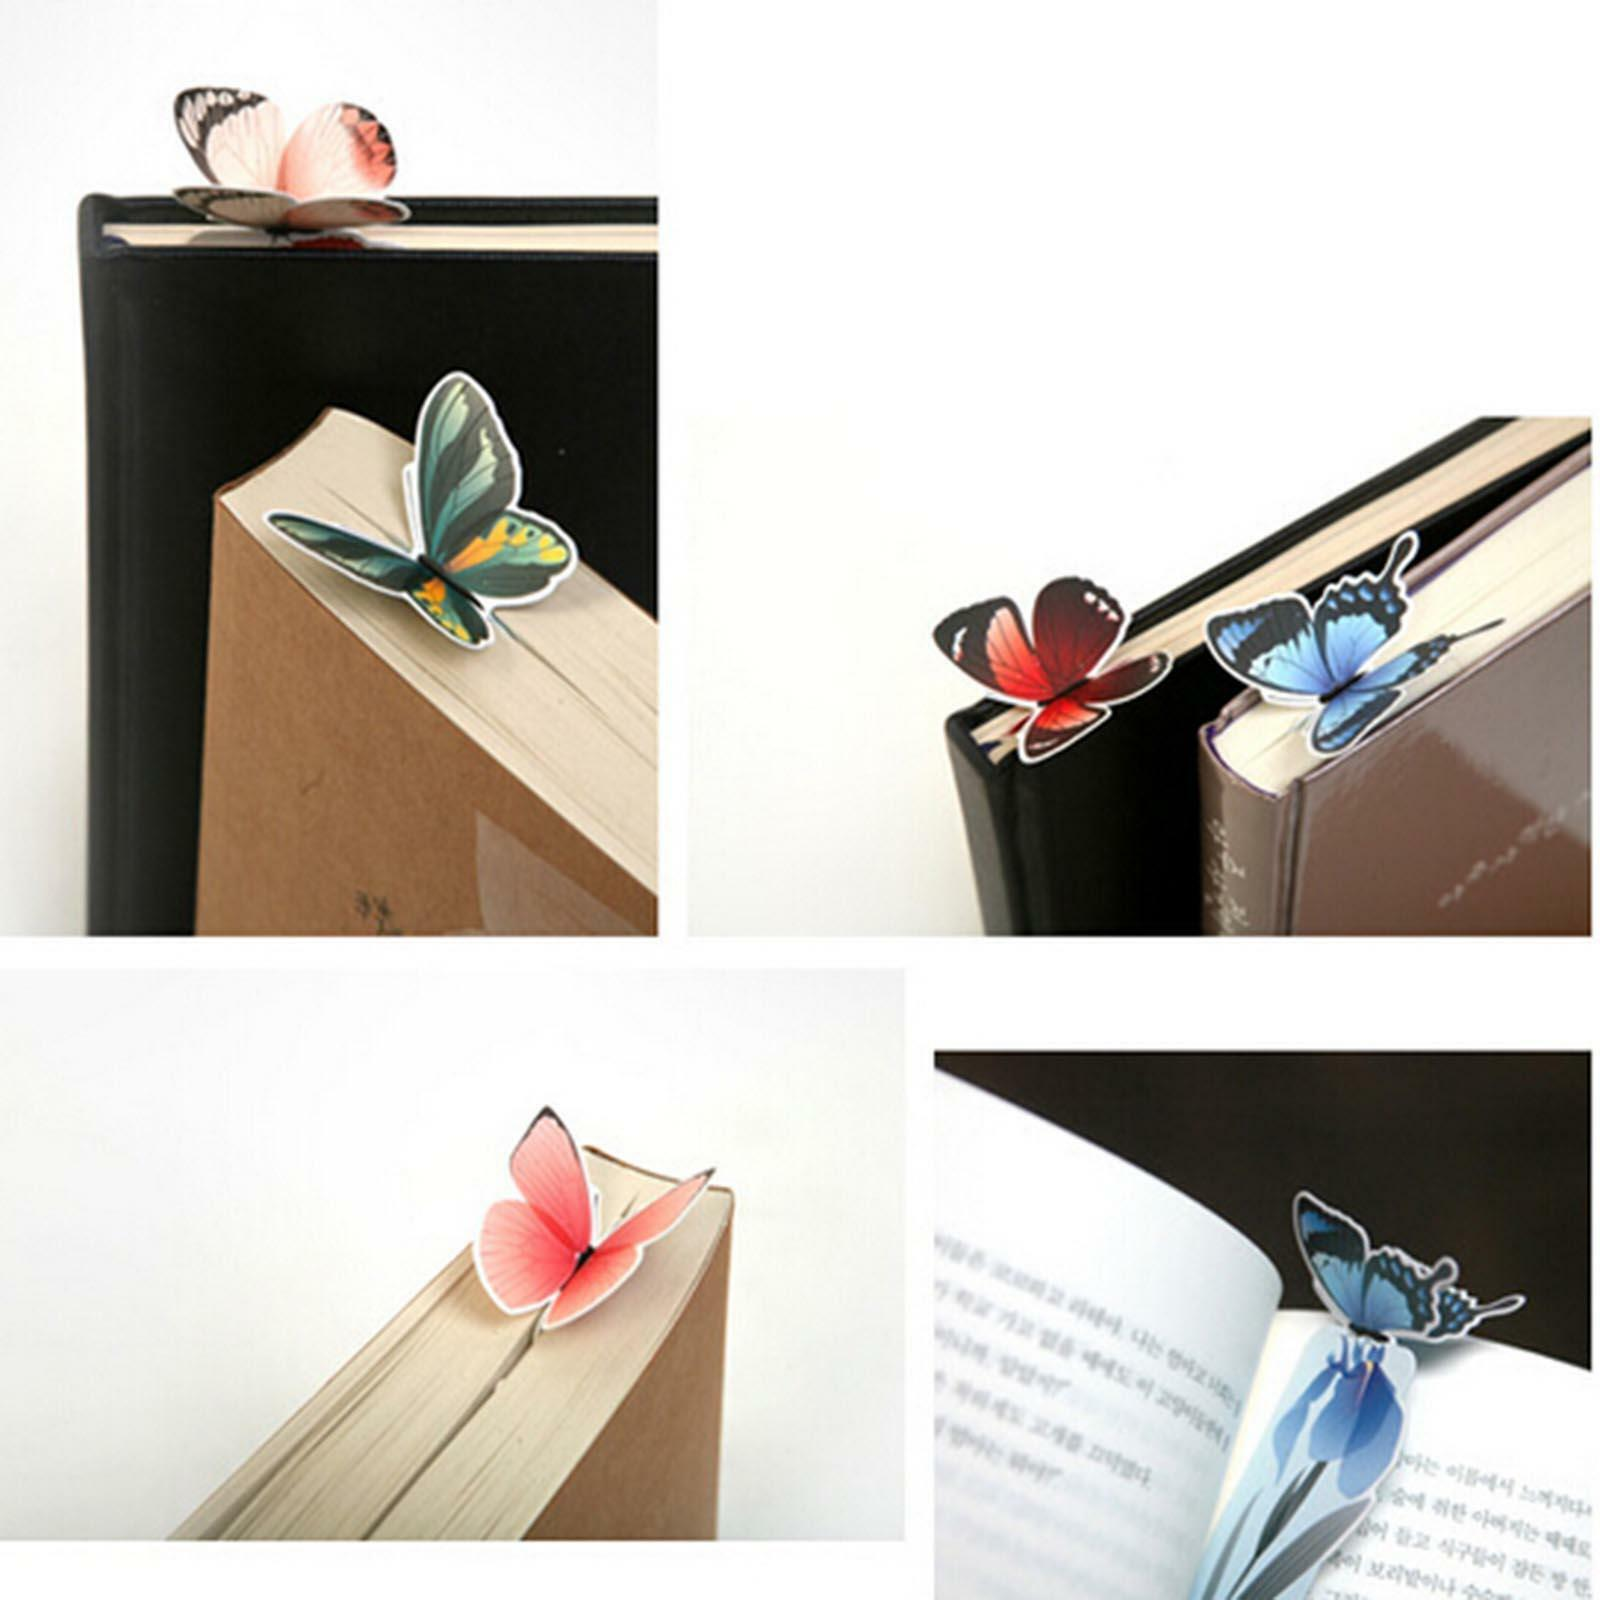 http://www.ebay.com/itm/Cute-2Pcs-Butterfly-Shape-Exquisite-Mini-Bookmark-Stationery-Reading-Accessories-/231579983170?hash=item35eb3e1d42:g:MUoAAOSwxYxUvMCQ